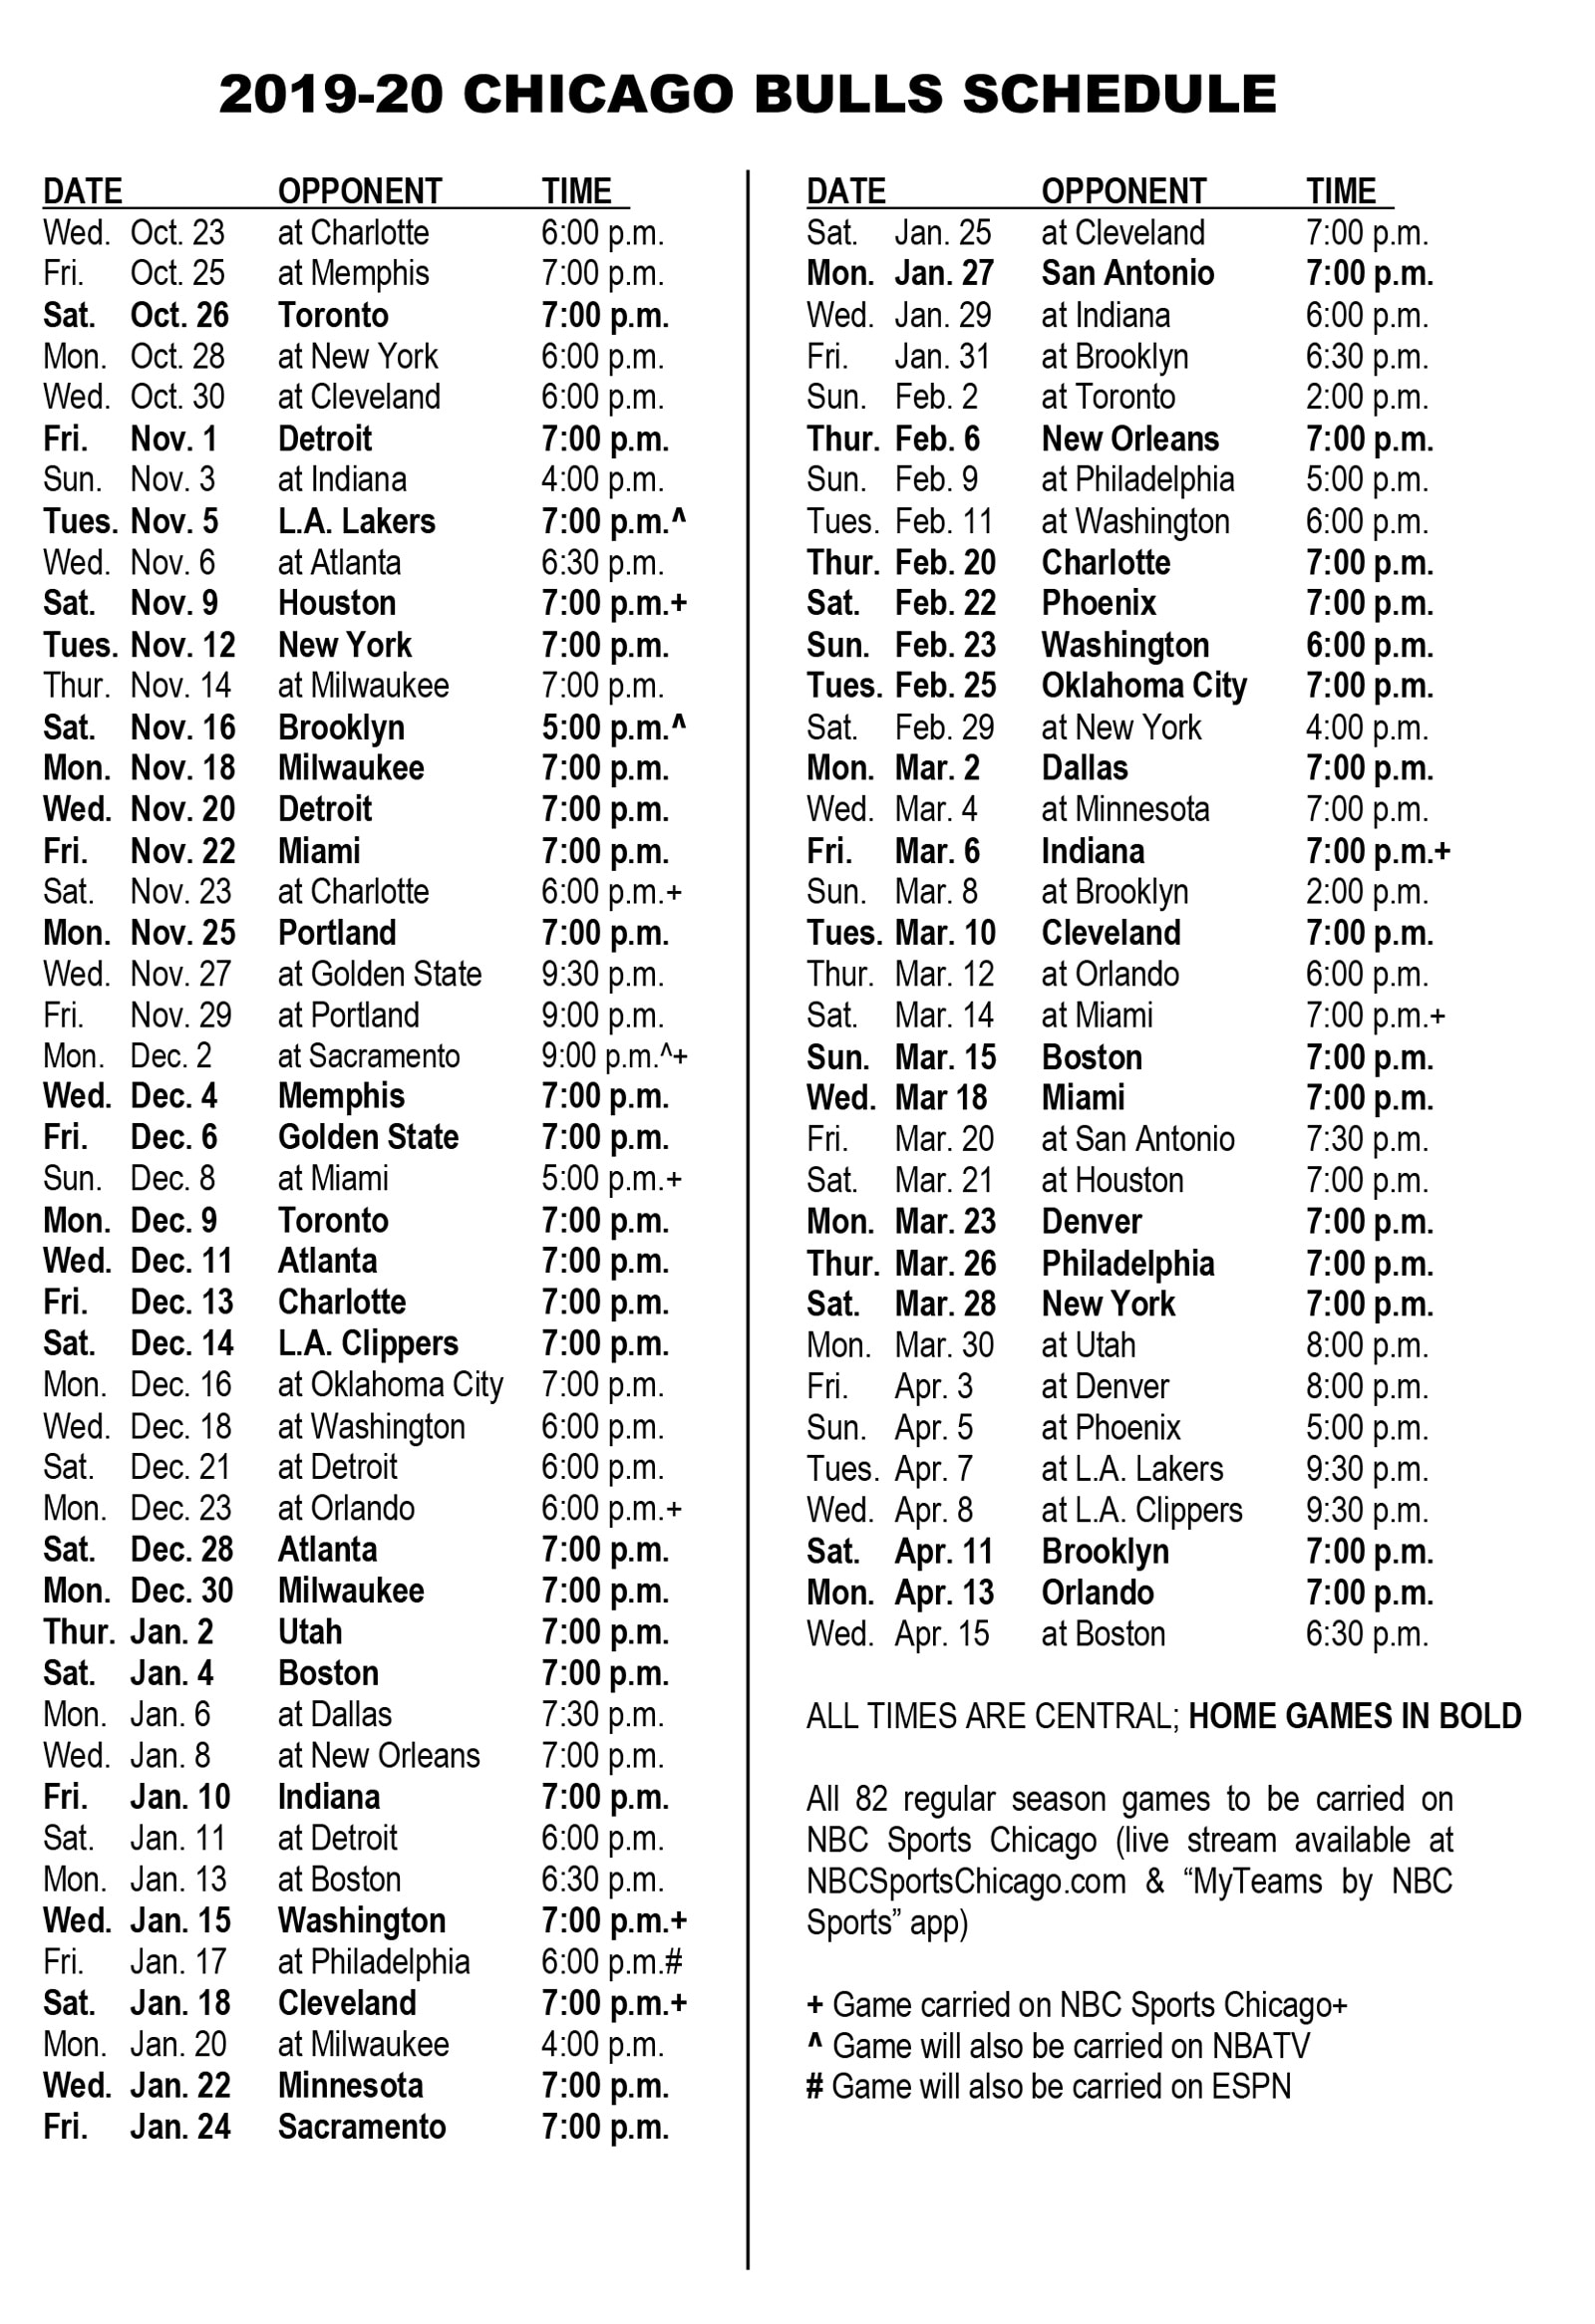 picture about Chicago Bulls Schedule Printable named Chicago Bulls announce 2019-20 Timetable Chicago Bulls